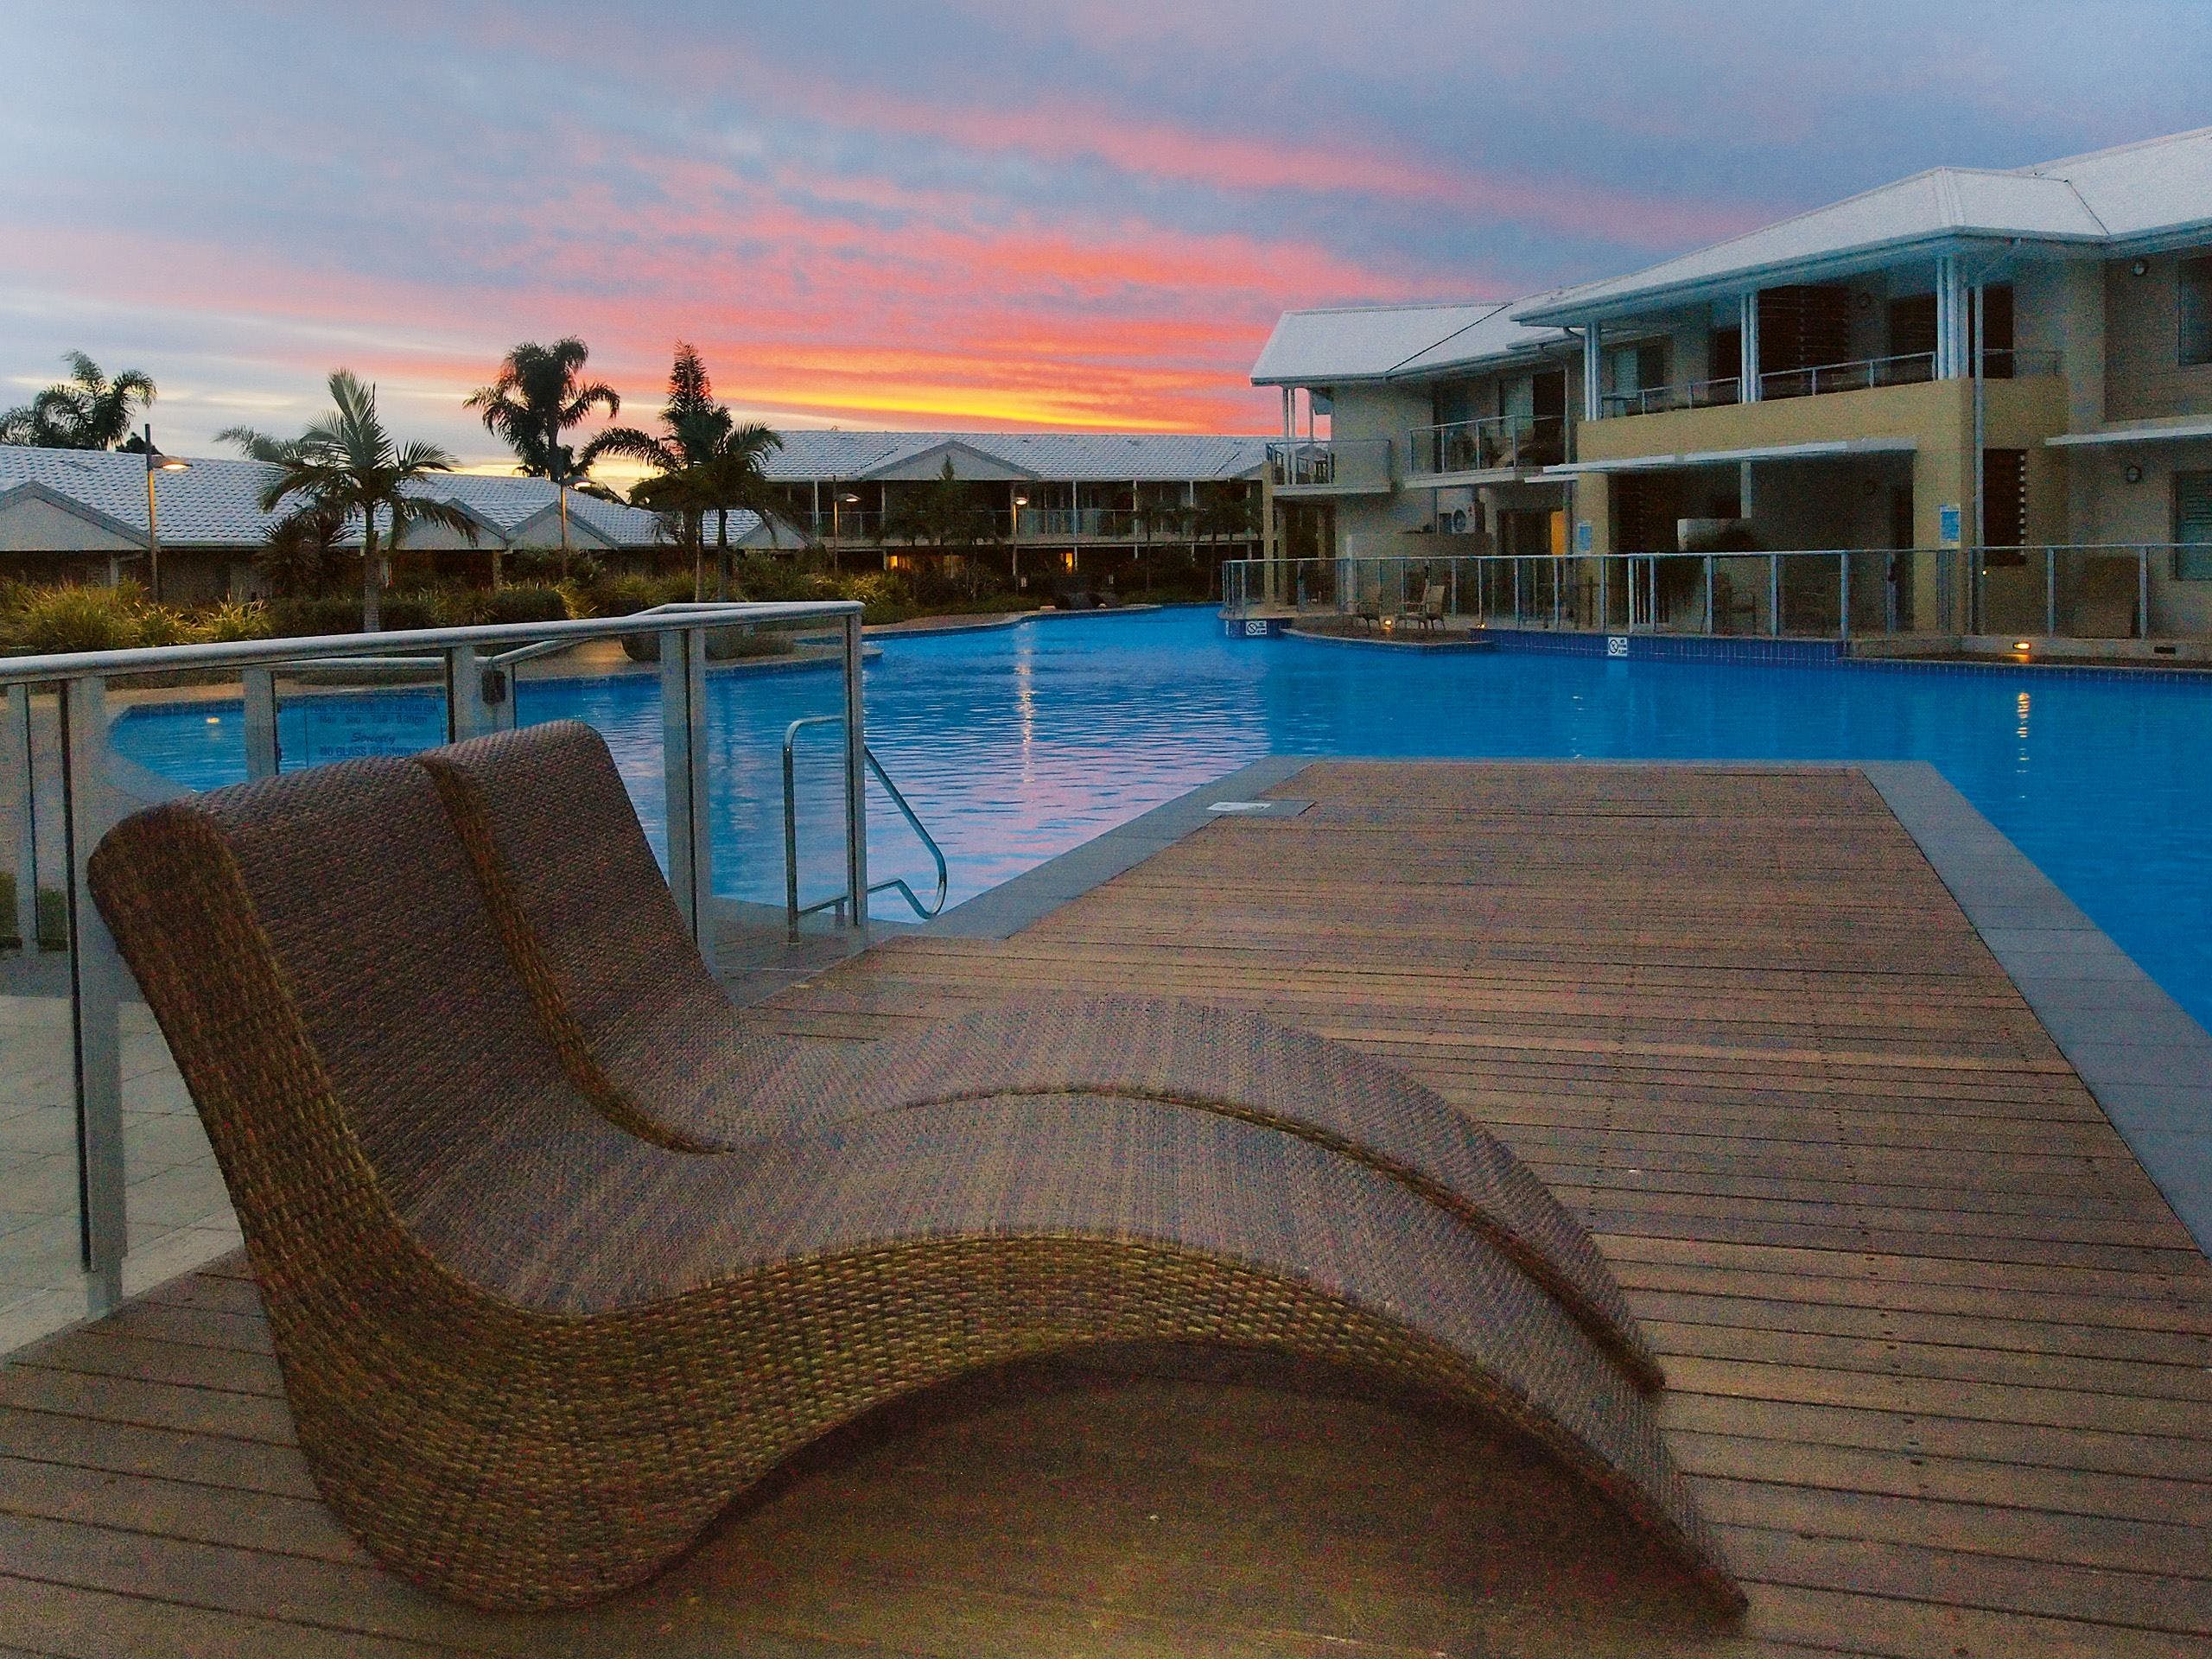 Oaks Port Stephens Pacific Blue Resort - Kempsey Accommodation